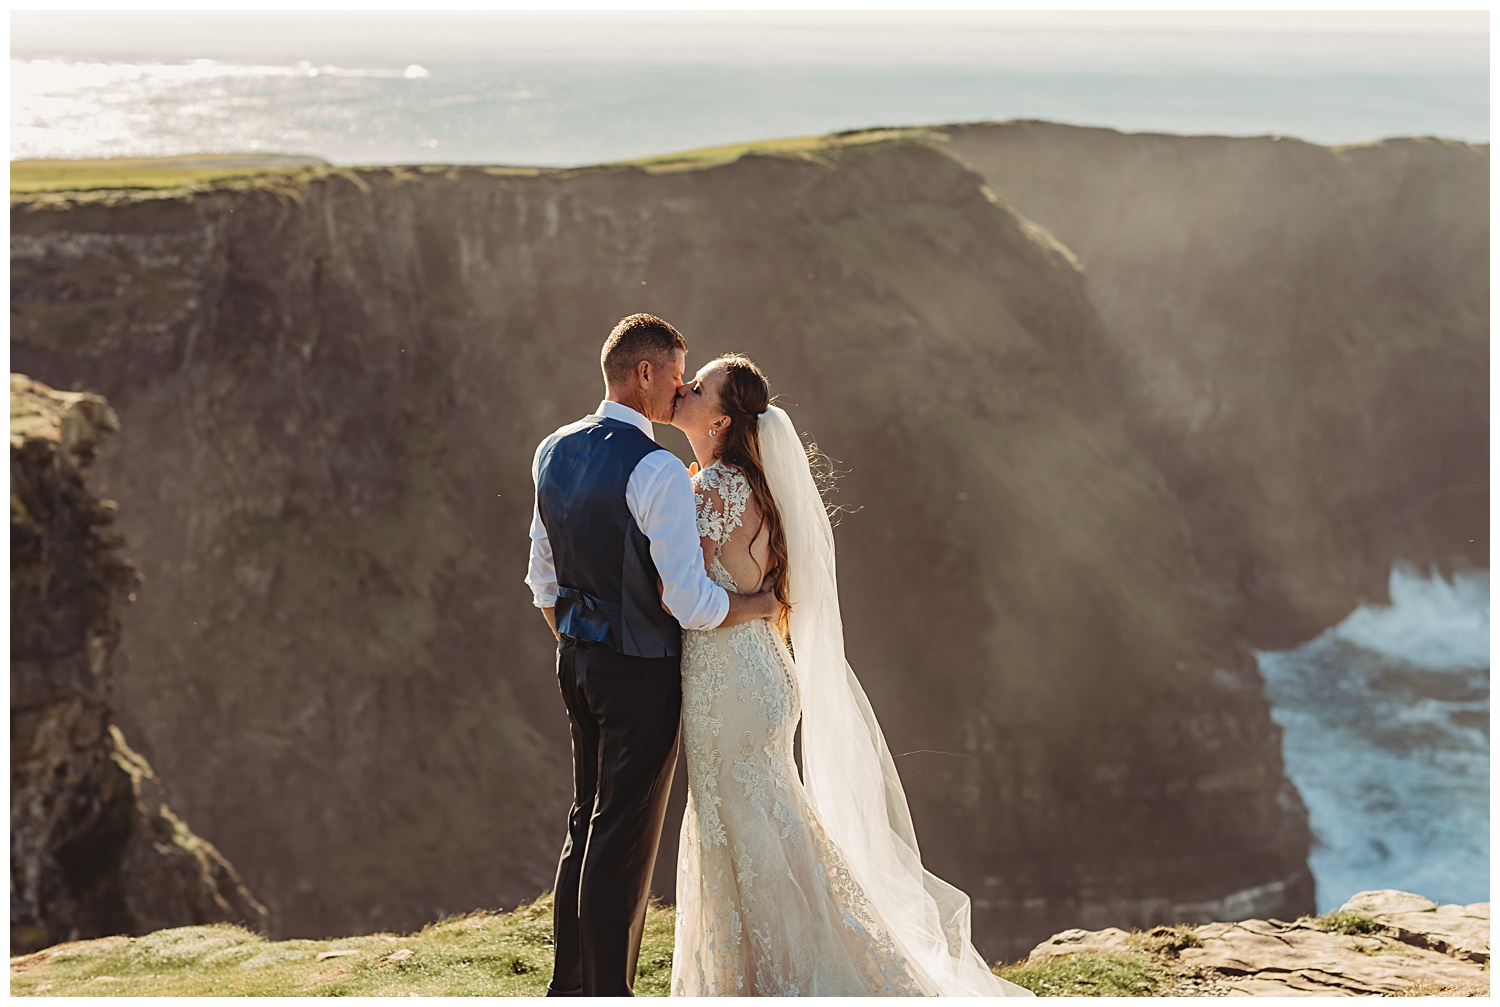 The Cliffs of Moher Destination Wedding Liscannor, County Clare, Ireland_1247.jpg